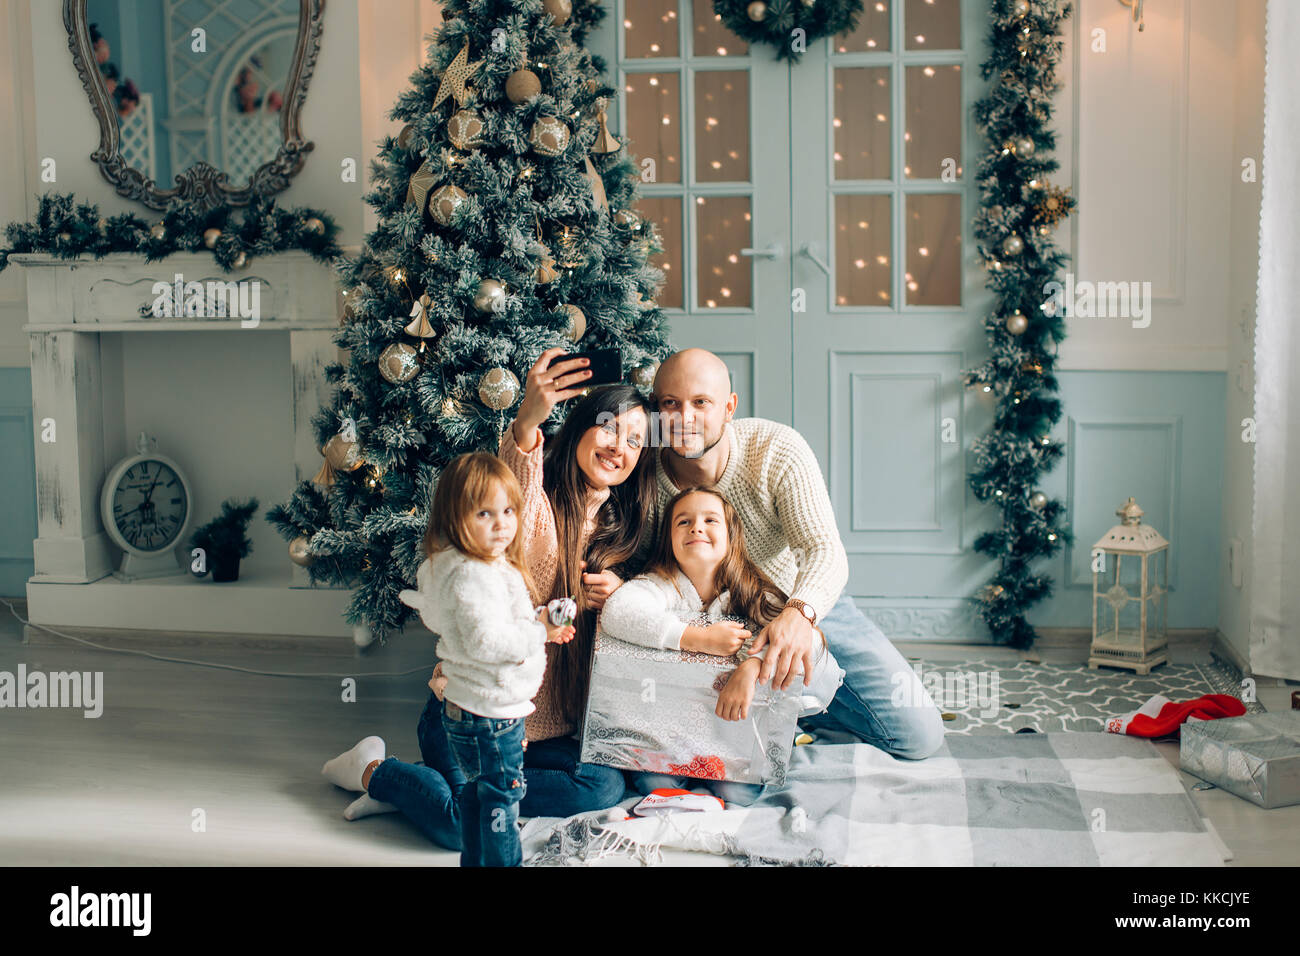 miling young family in Christmas atmosphere making photo with smartphone - Stock Image